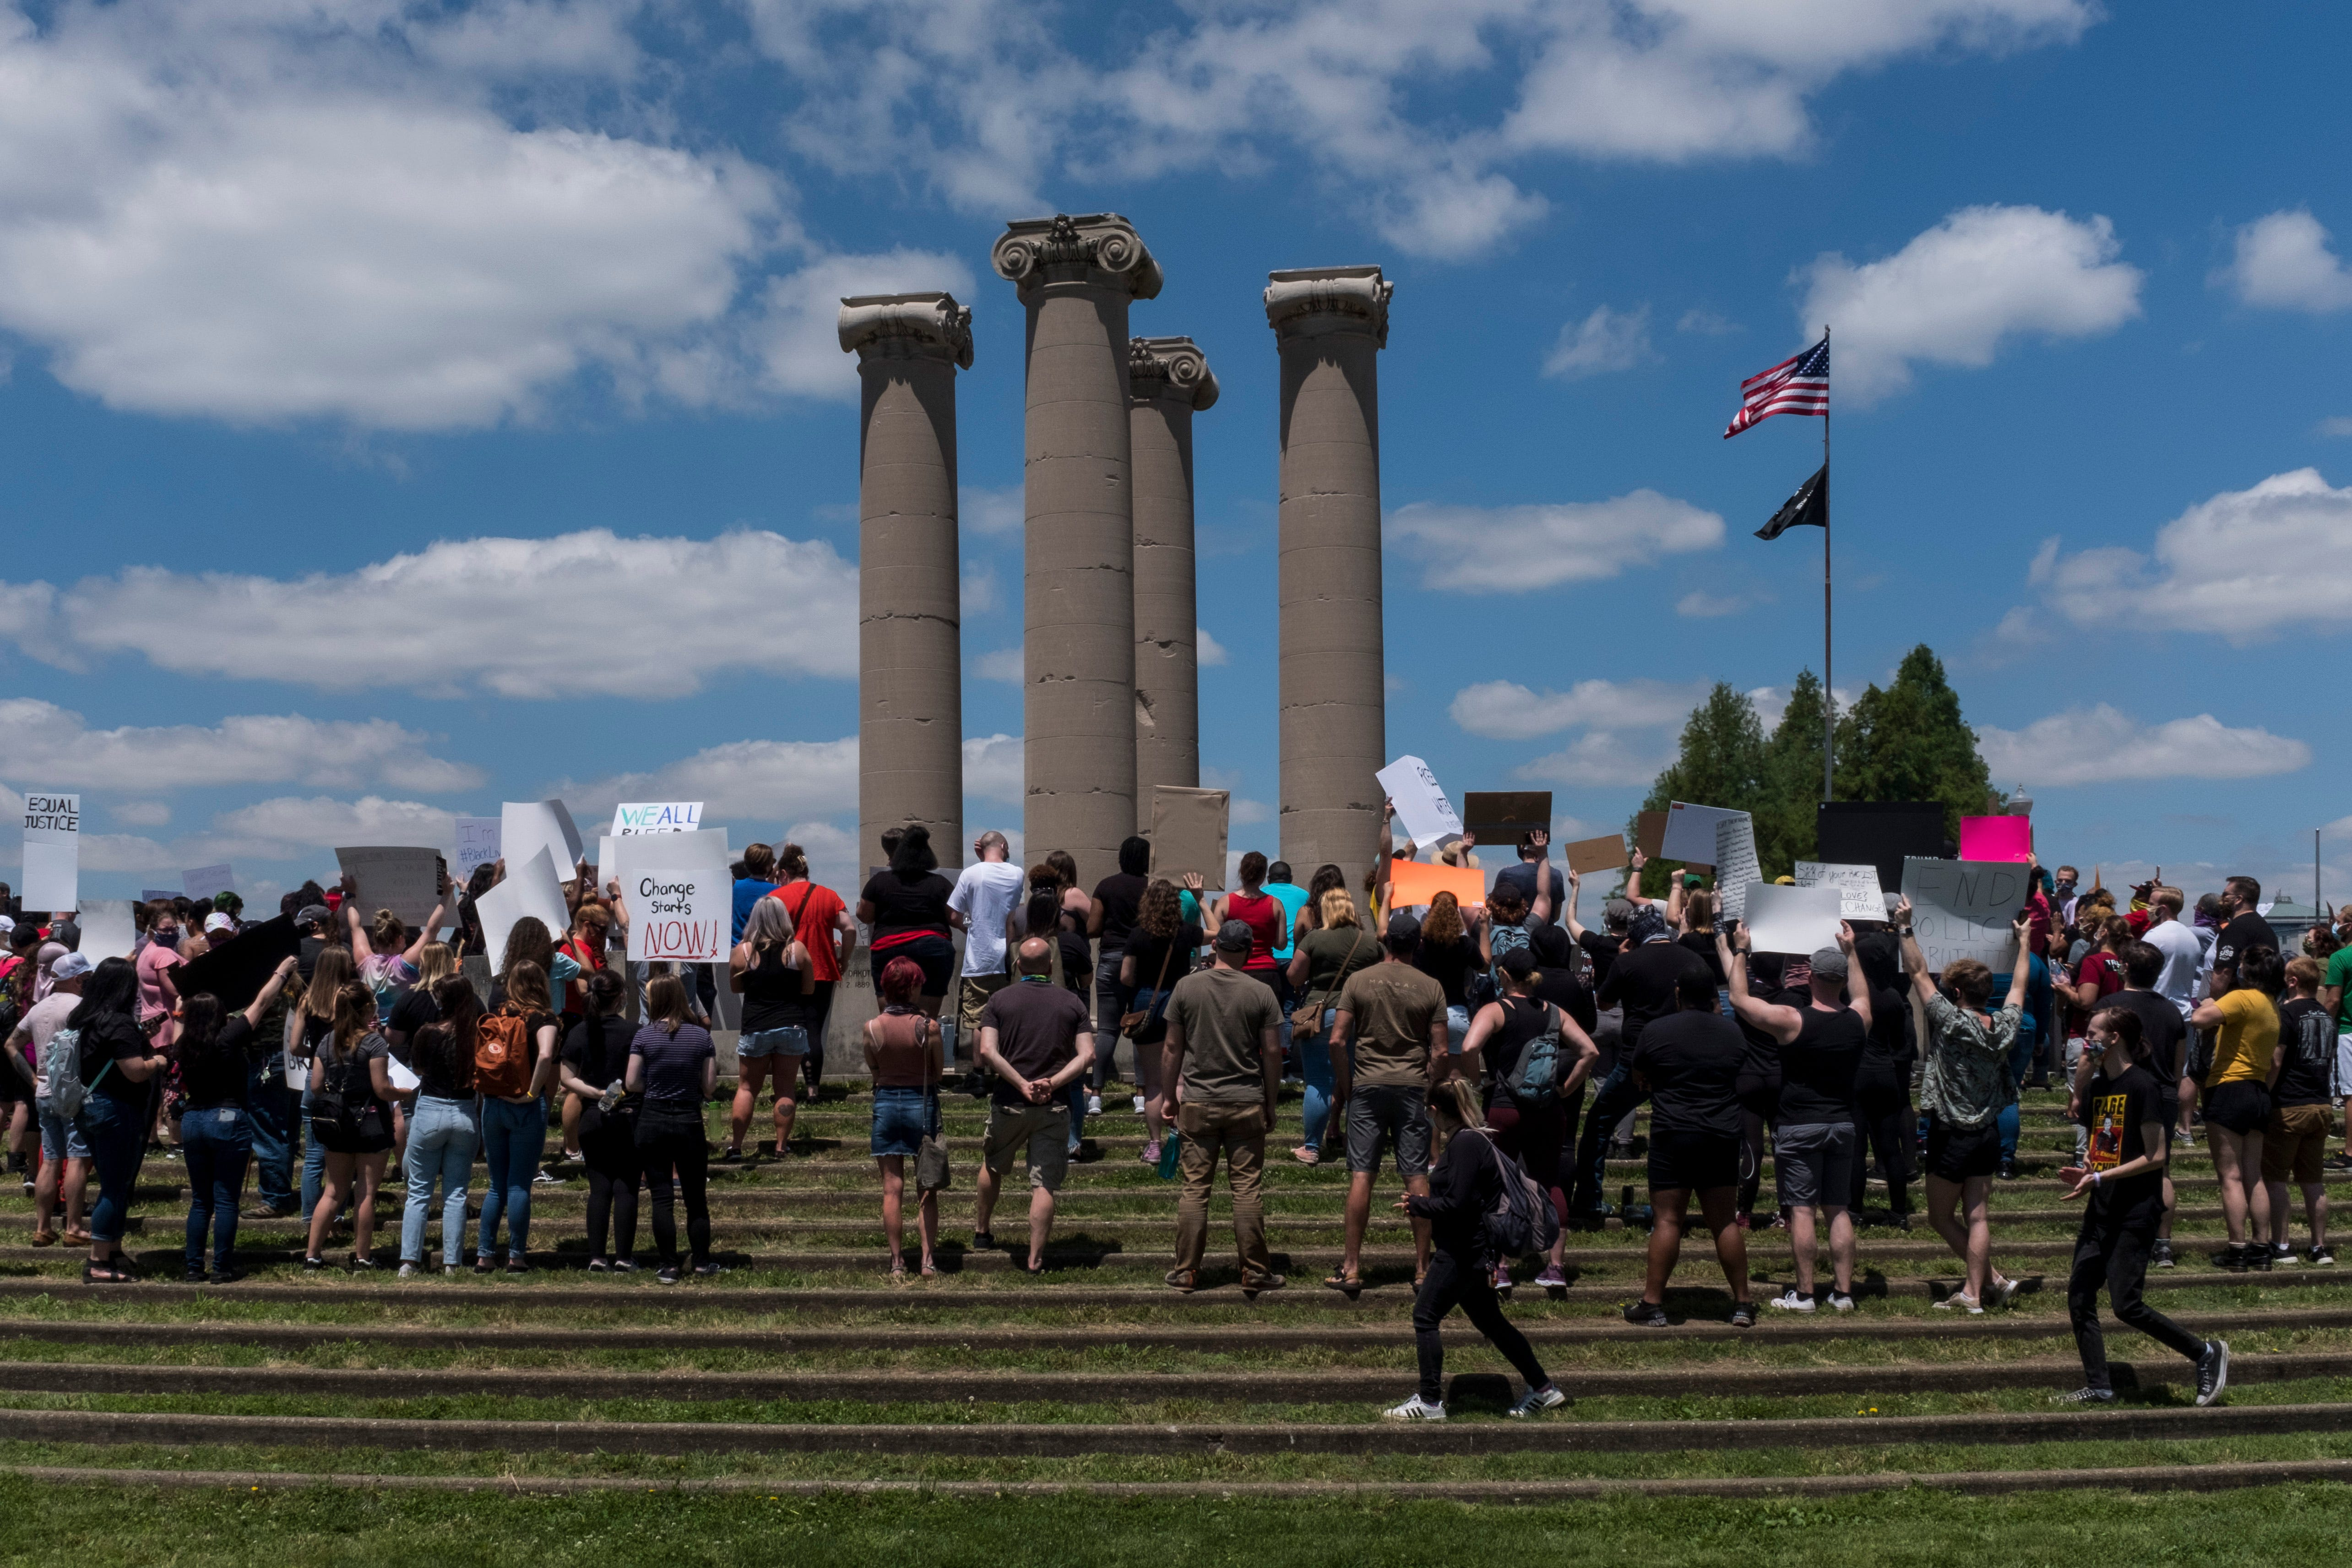 People gather for an anti-violence rally at the Four Freedoms Monument in Downtown Evansville, Ind., Saturday, May 30, 2020.